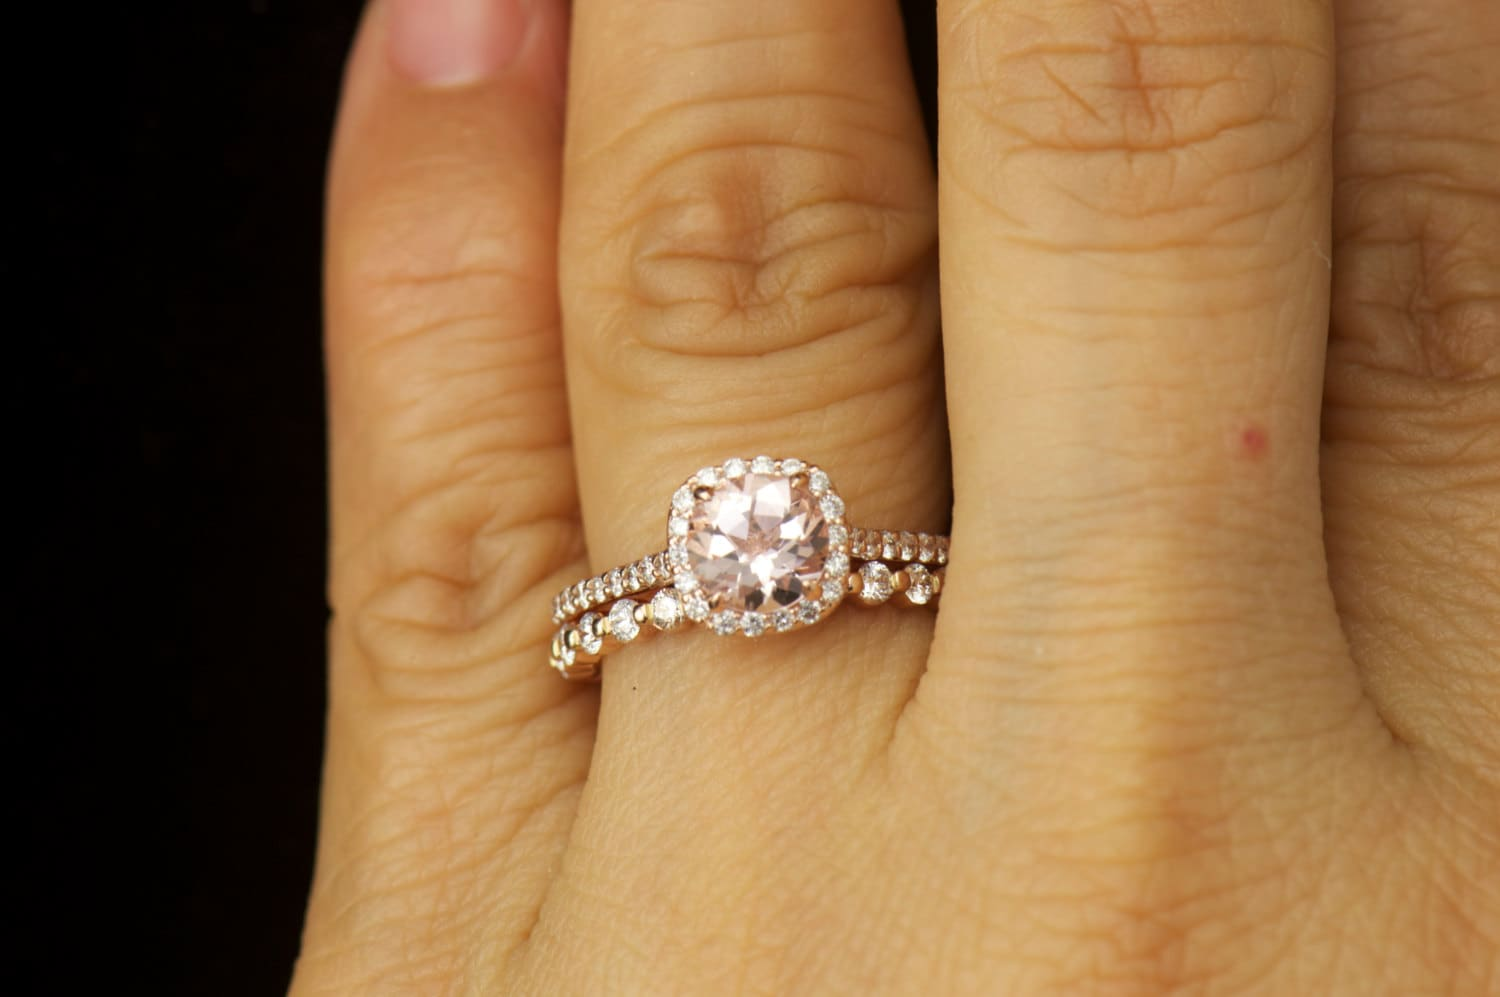 floating ring engagement single prong rings original products white band productimages diamond gold shared wedding